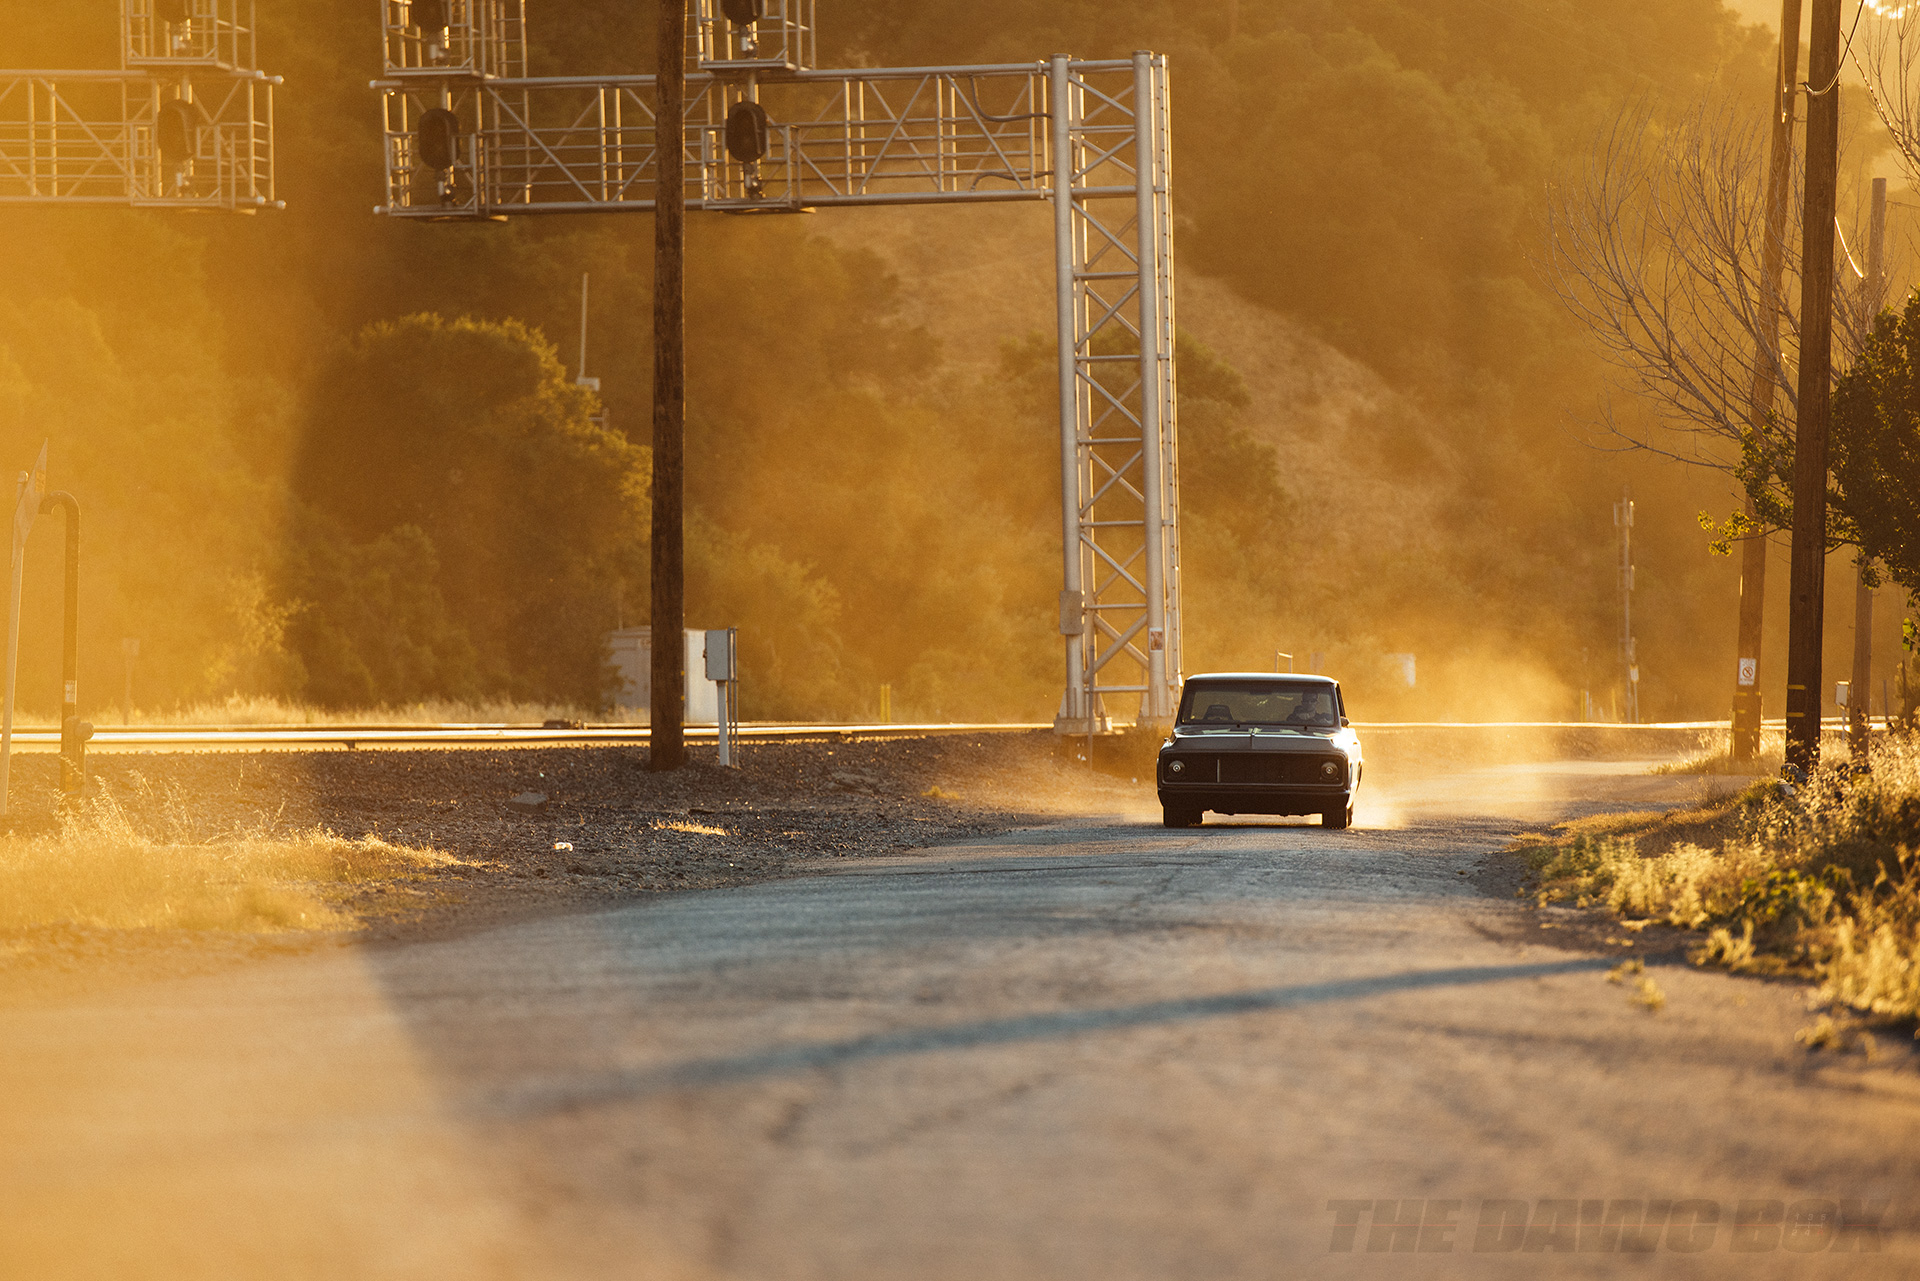 Third Time's The Charm: Dustin Reed's 1972 Chevy C10, Dusty Road